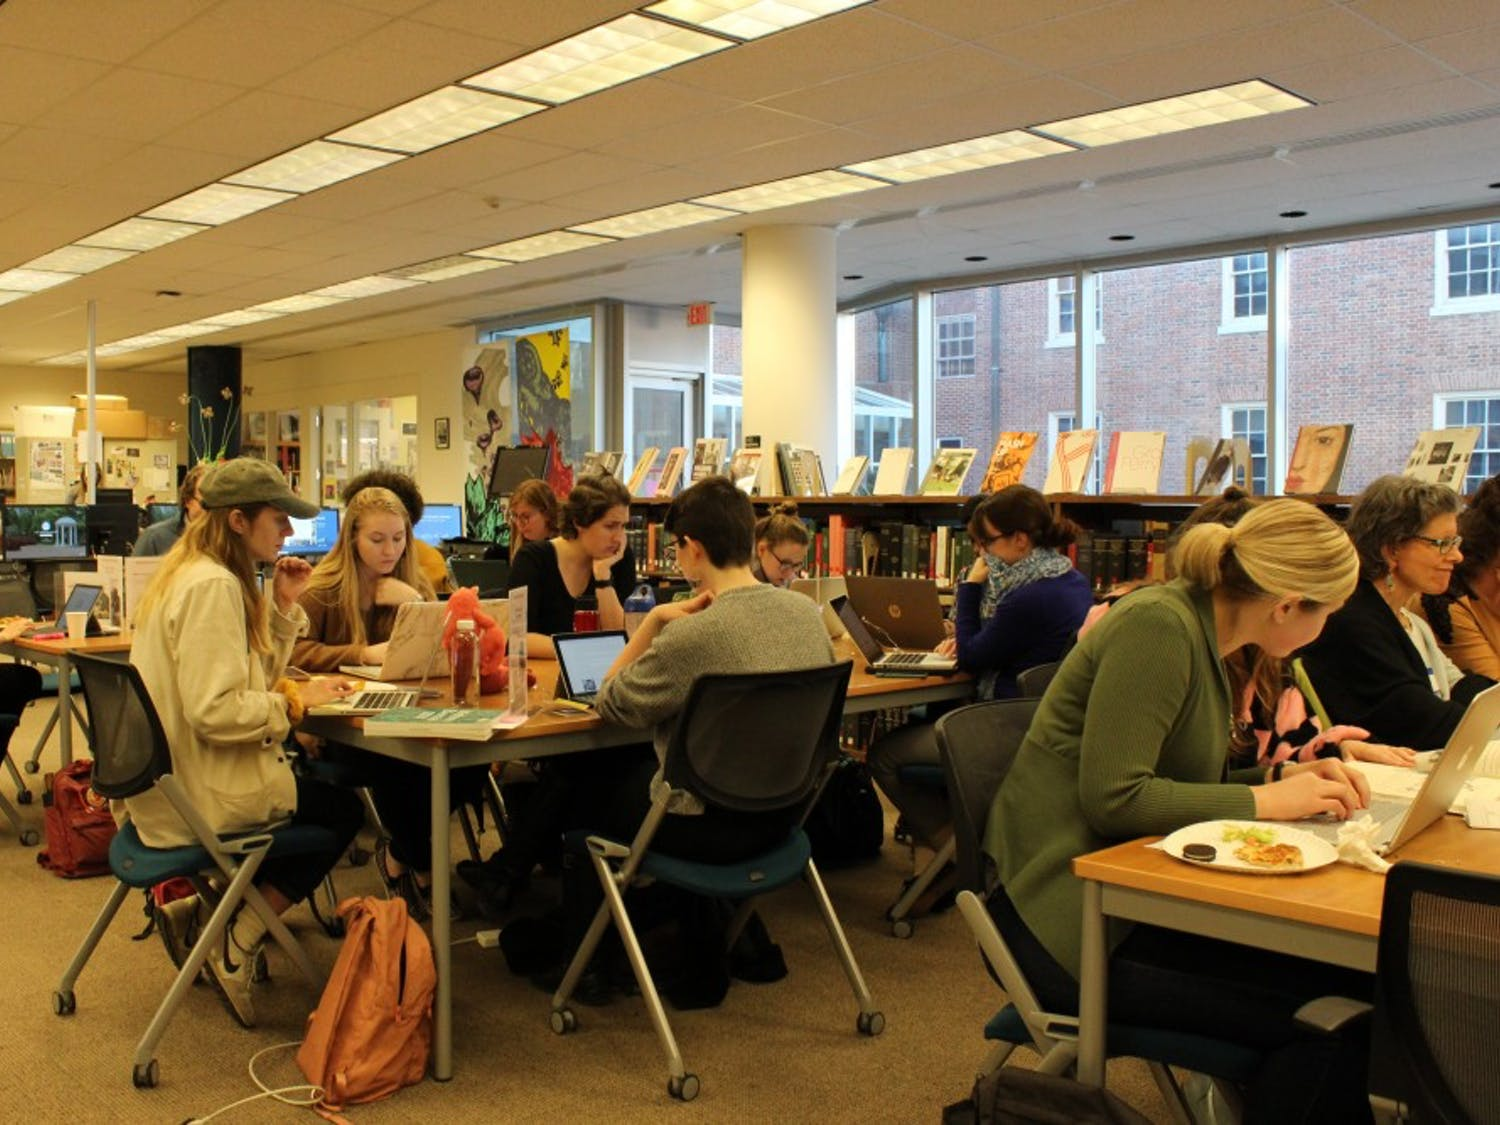 Participants of Art + Feminism Wikipedia Edit-A-Thon edit Wikipedia pages in Sloane Art Library on Tuesday, March 4, 2019. Less than 10 percent of Wikipedia editors are female, and this lack of representation leads to skewed representation. Participants come together to address this issue by editing and updating Wikipedia articles related to gender, art, and feminism.